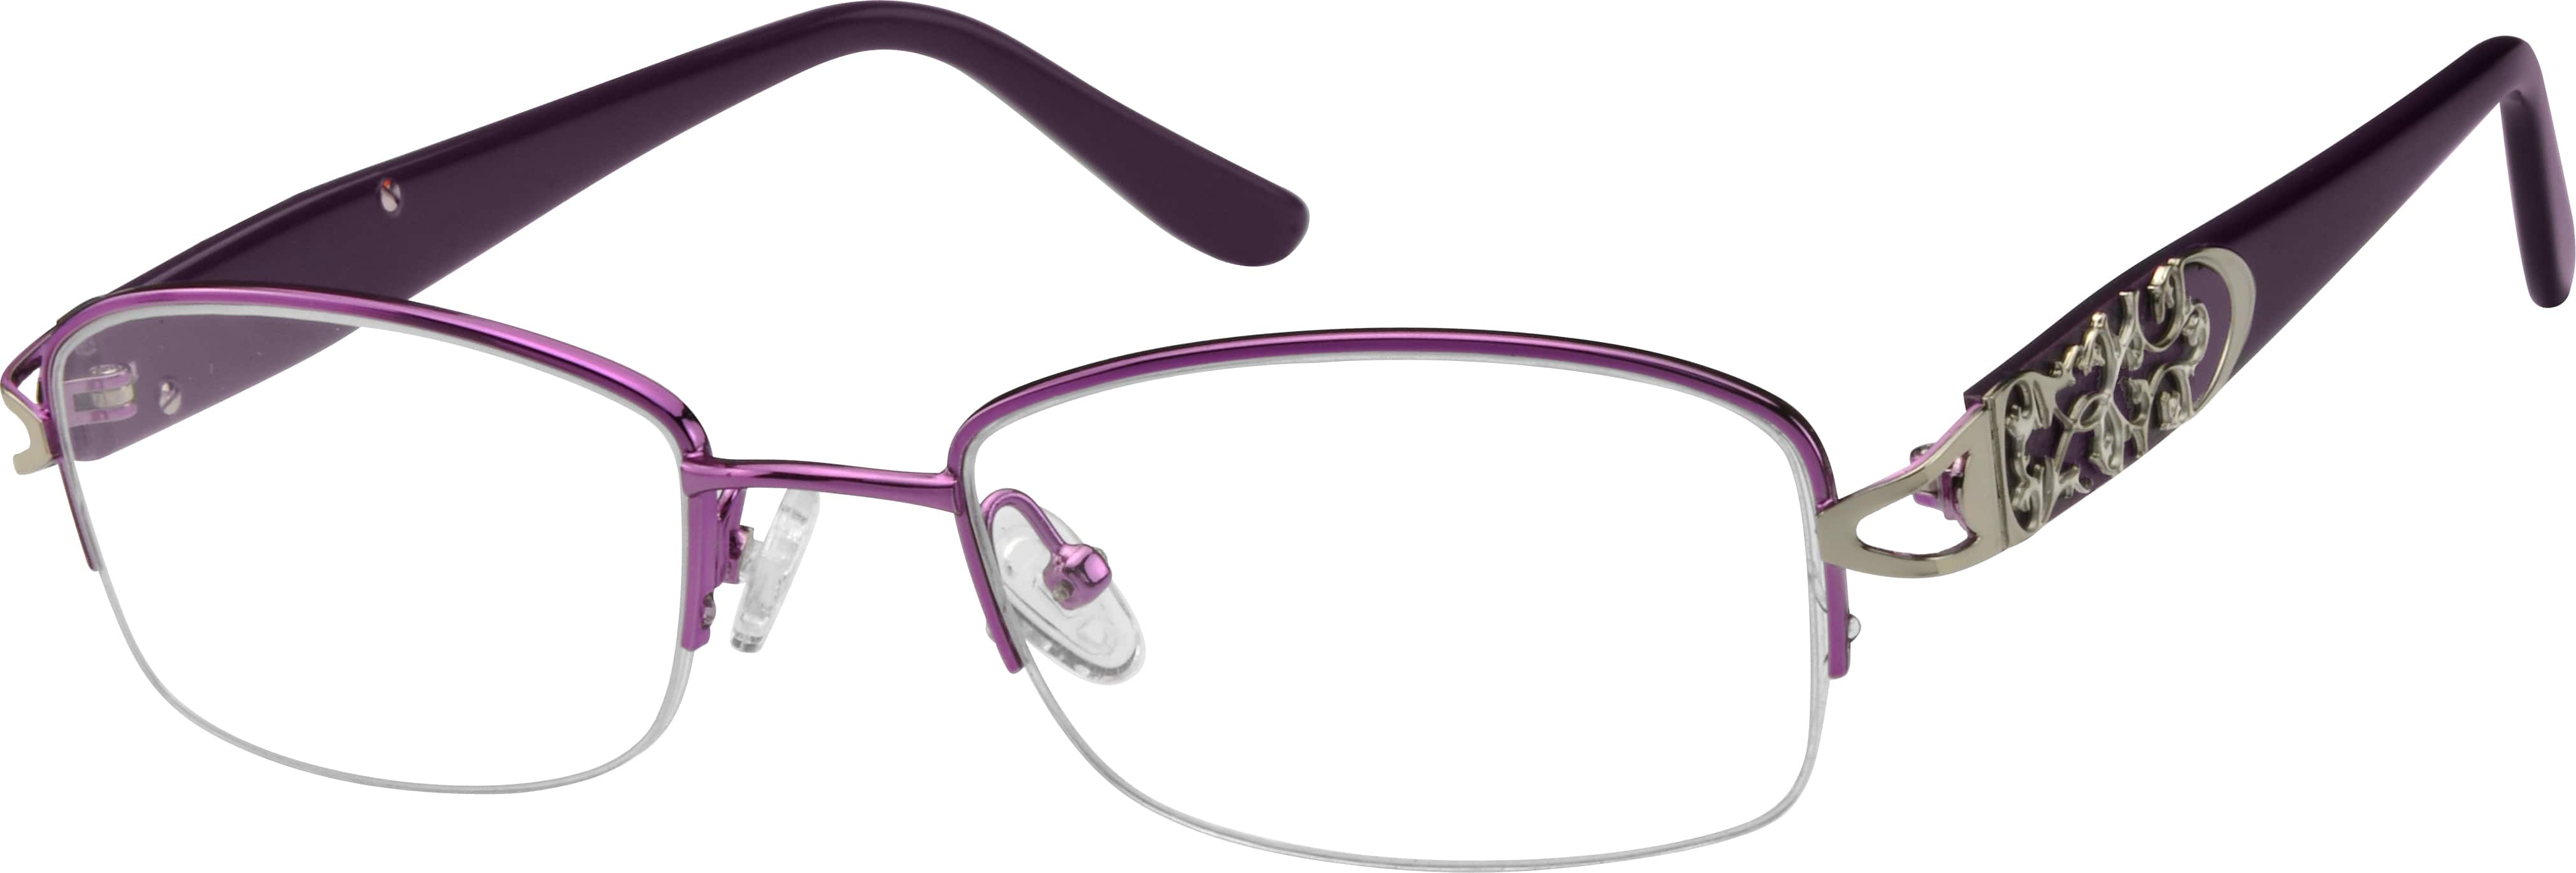 932617-stainless-steel-half-rim-frame-with-acetate-temples